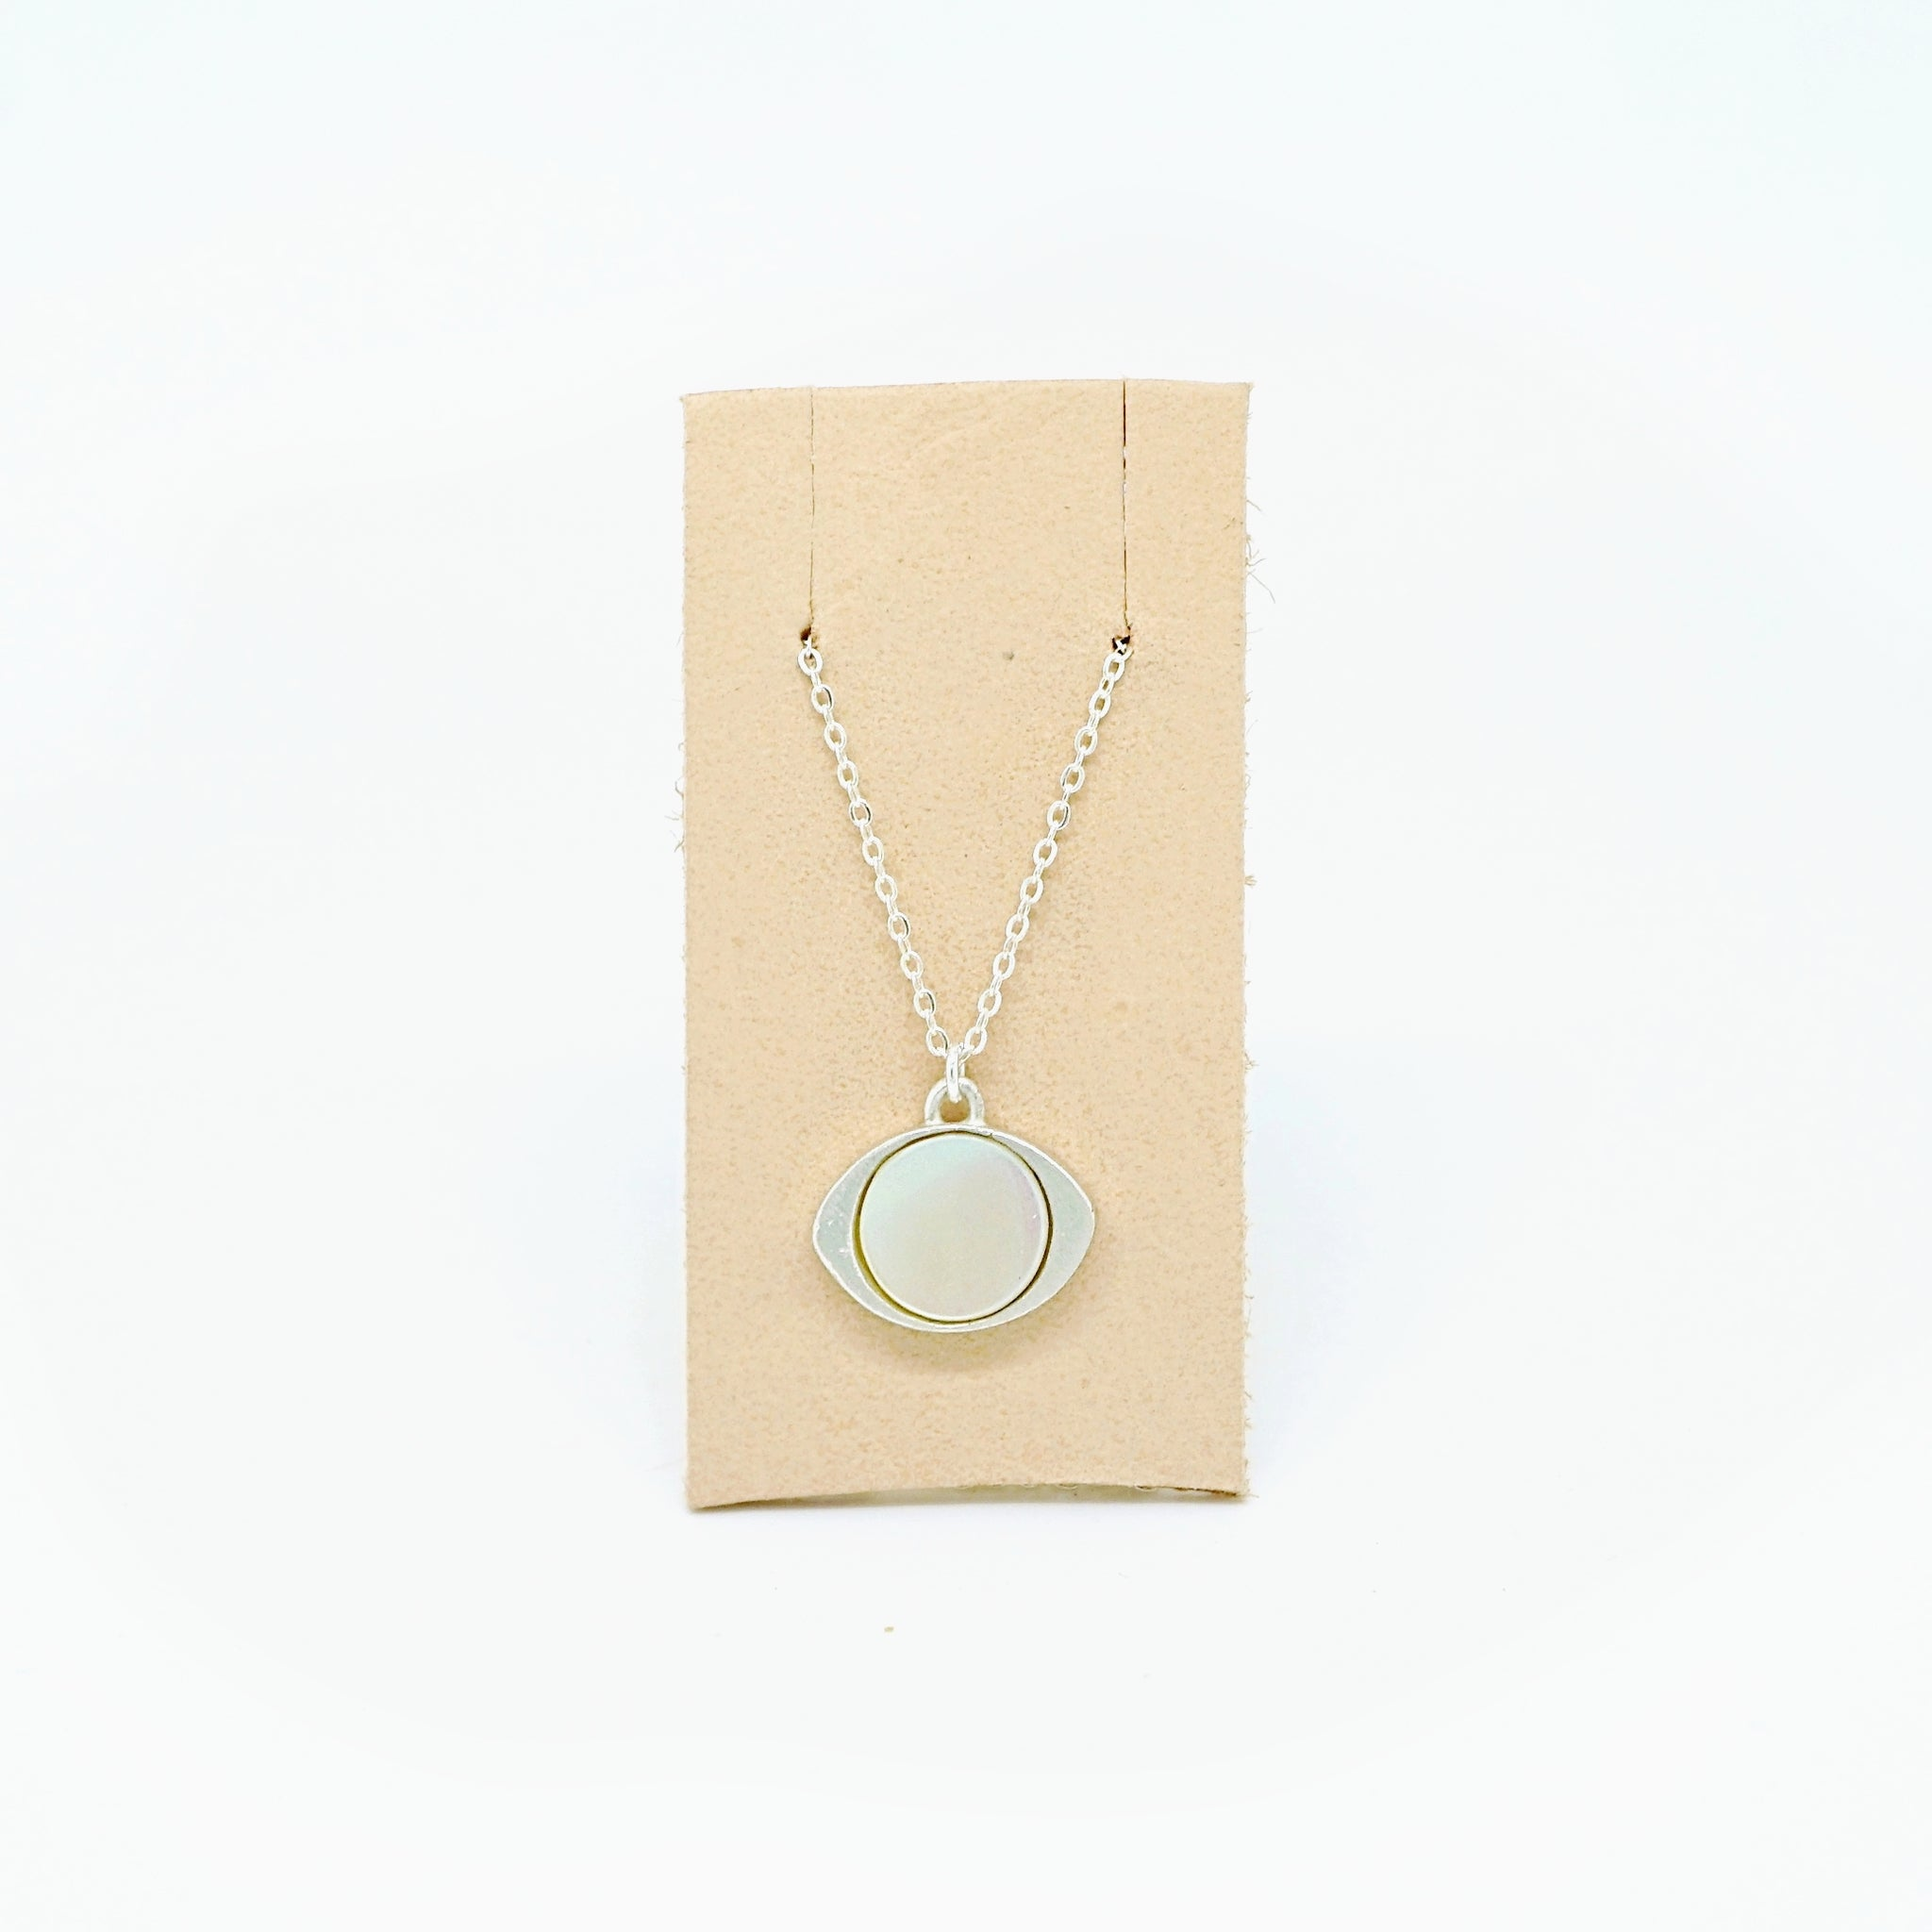 Mother of pearl eye pendant necklace